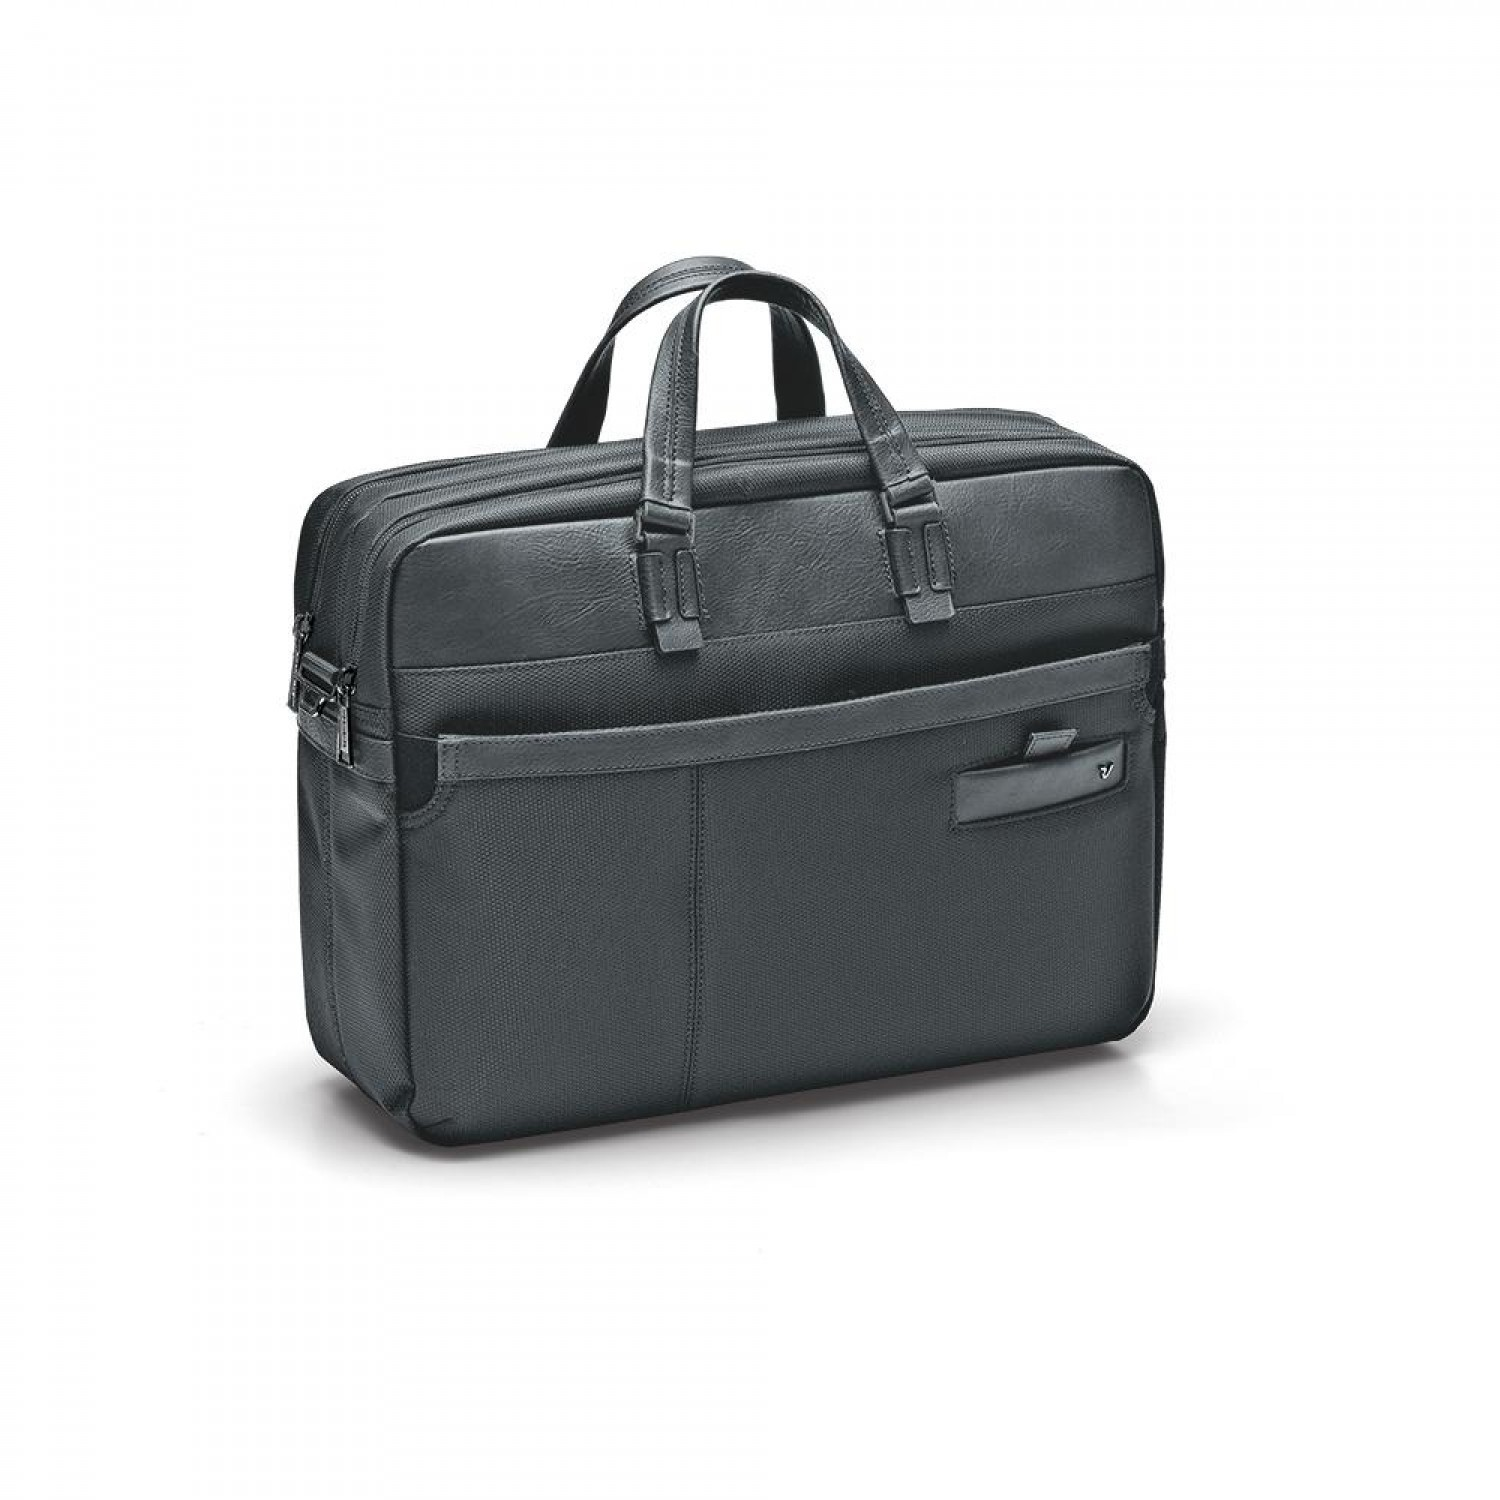 Сумка Roncato Harvard LAPTOP BAG 2 comp. Shark